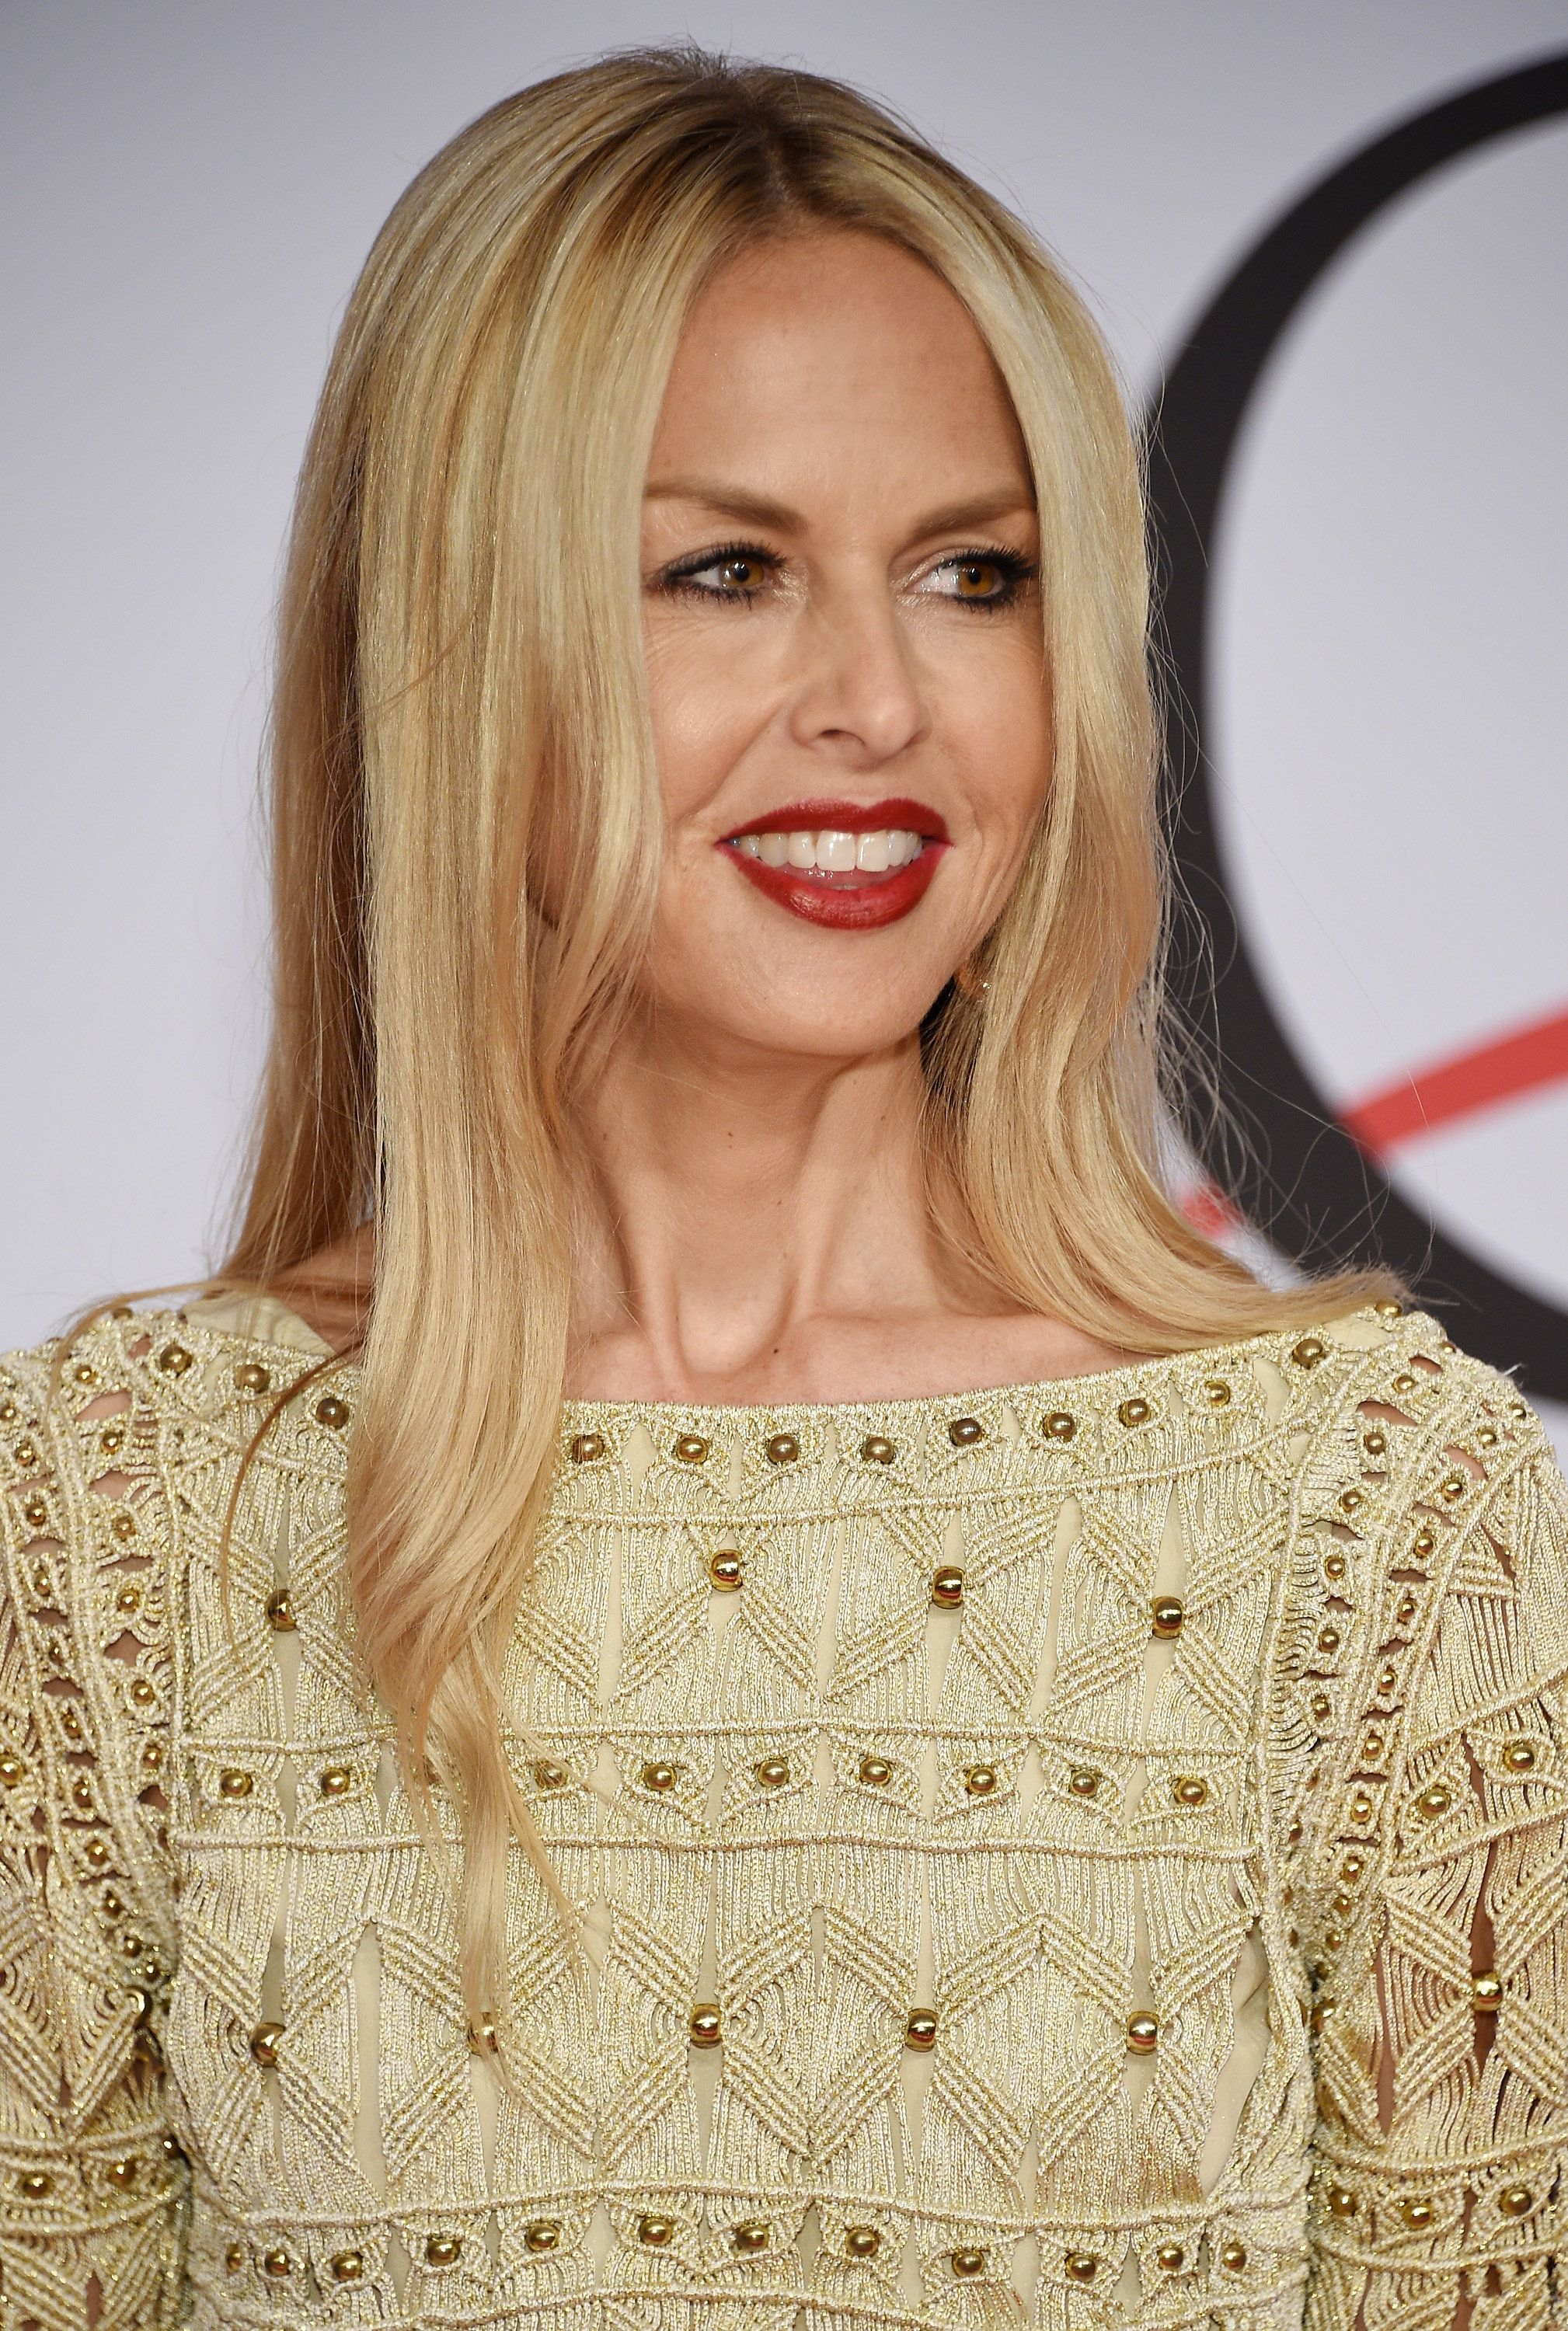 NEW YORK, NY - JUNE 01:  Designer Rachel Zoe attends the 2015 CFDA Fashion Awards  at Alice Tully Hall at Lincoln Center on June 1, 2015 in New York City.  (Photo by Dimitrios Kambouris/Getty Images)